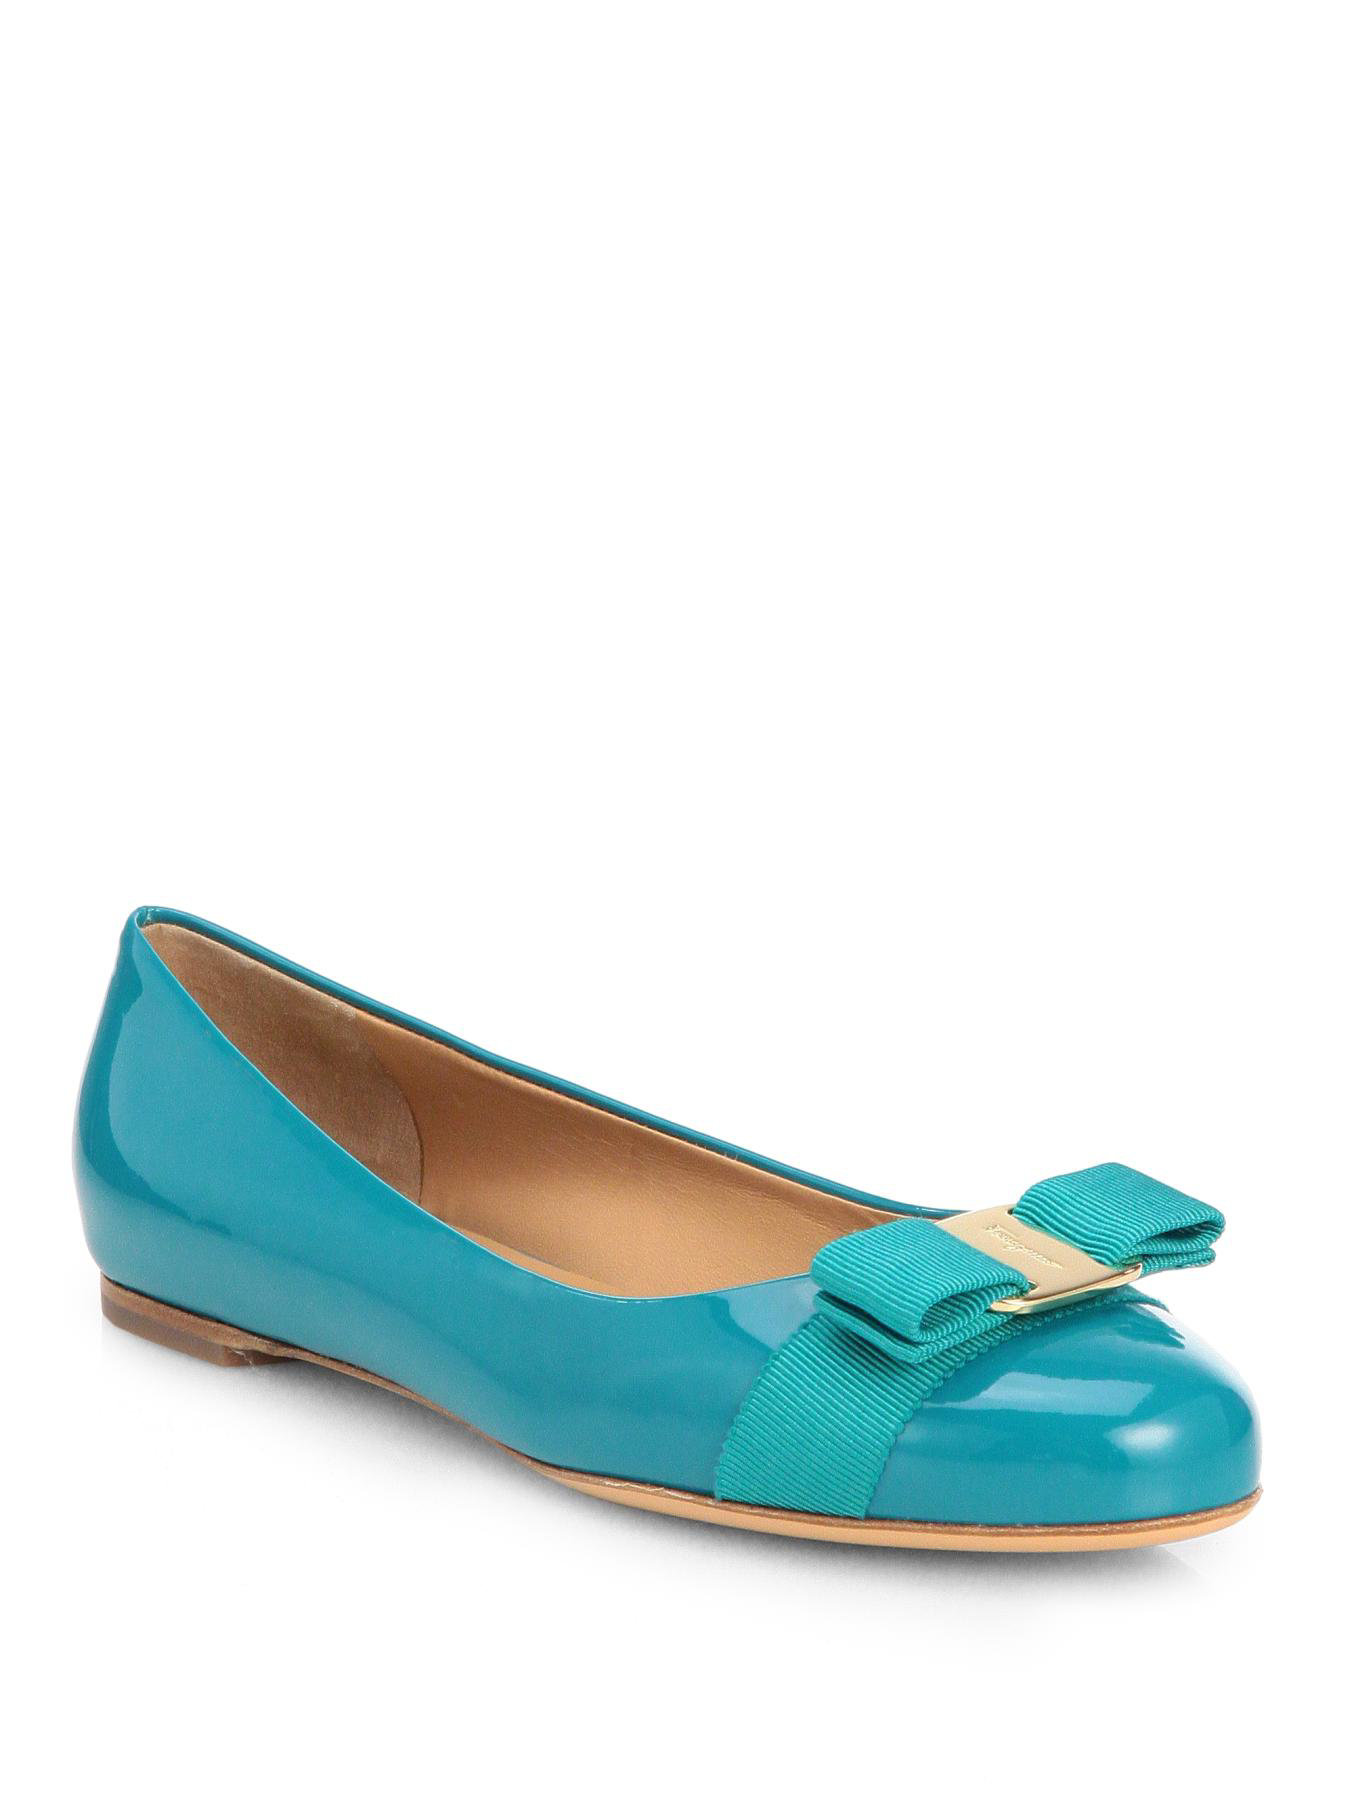 Turquoise Flats Women S Shoes